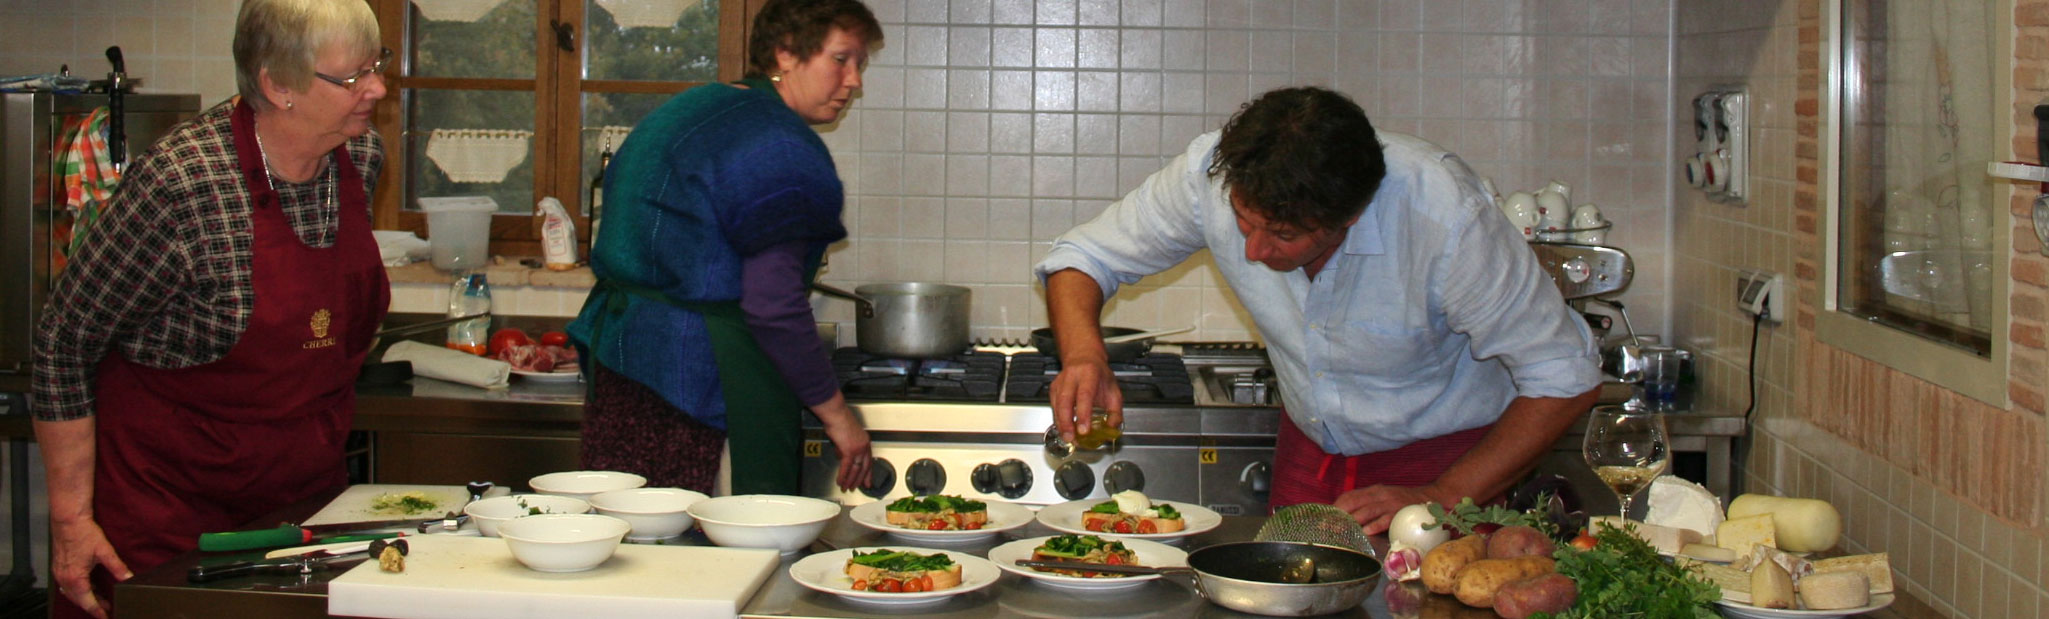 Cooking courses with visits to medioeval town in Marche